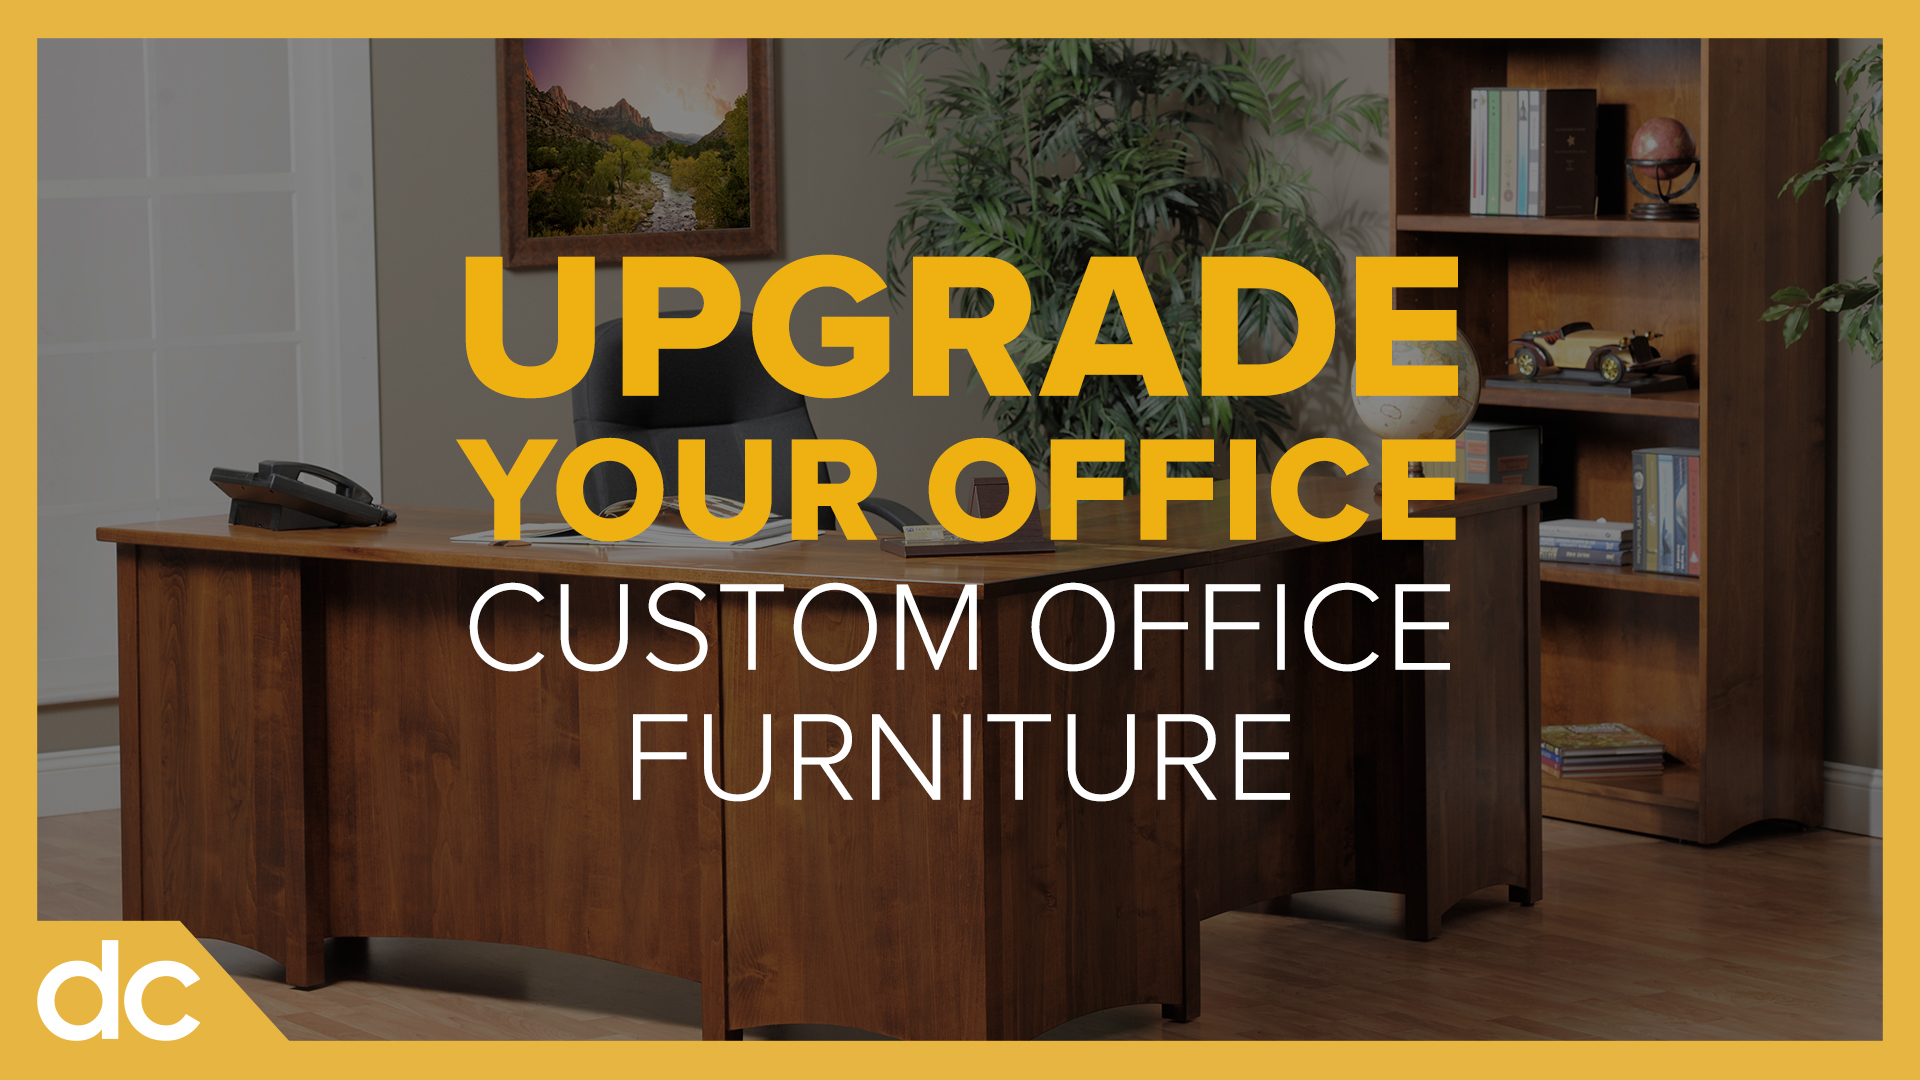 Upgrade your office custom office furniture